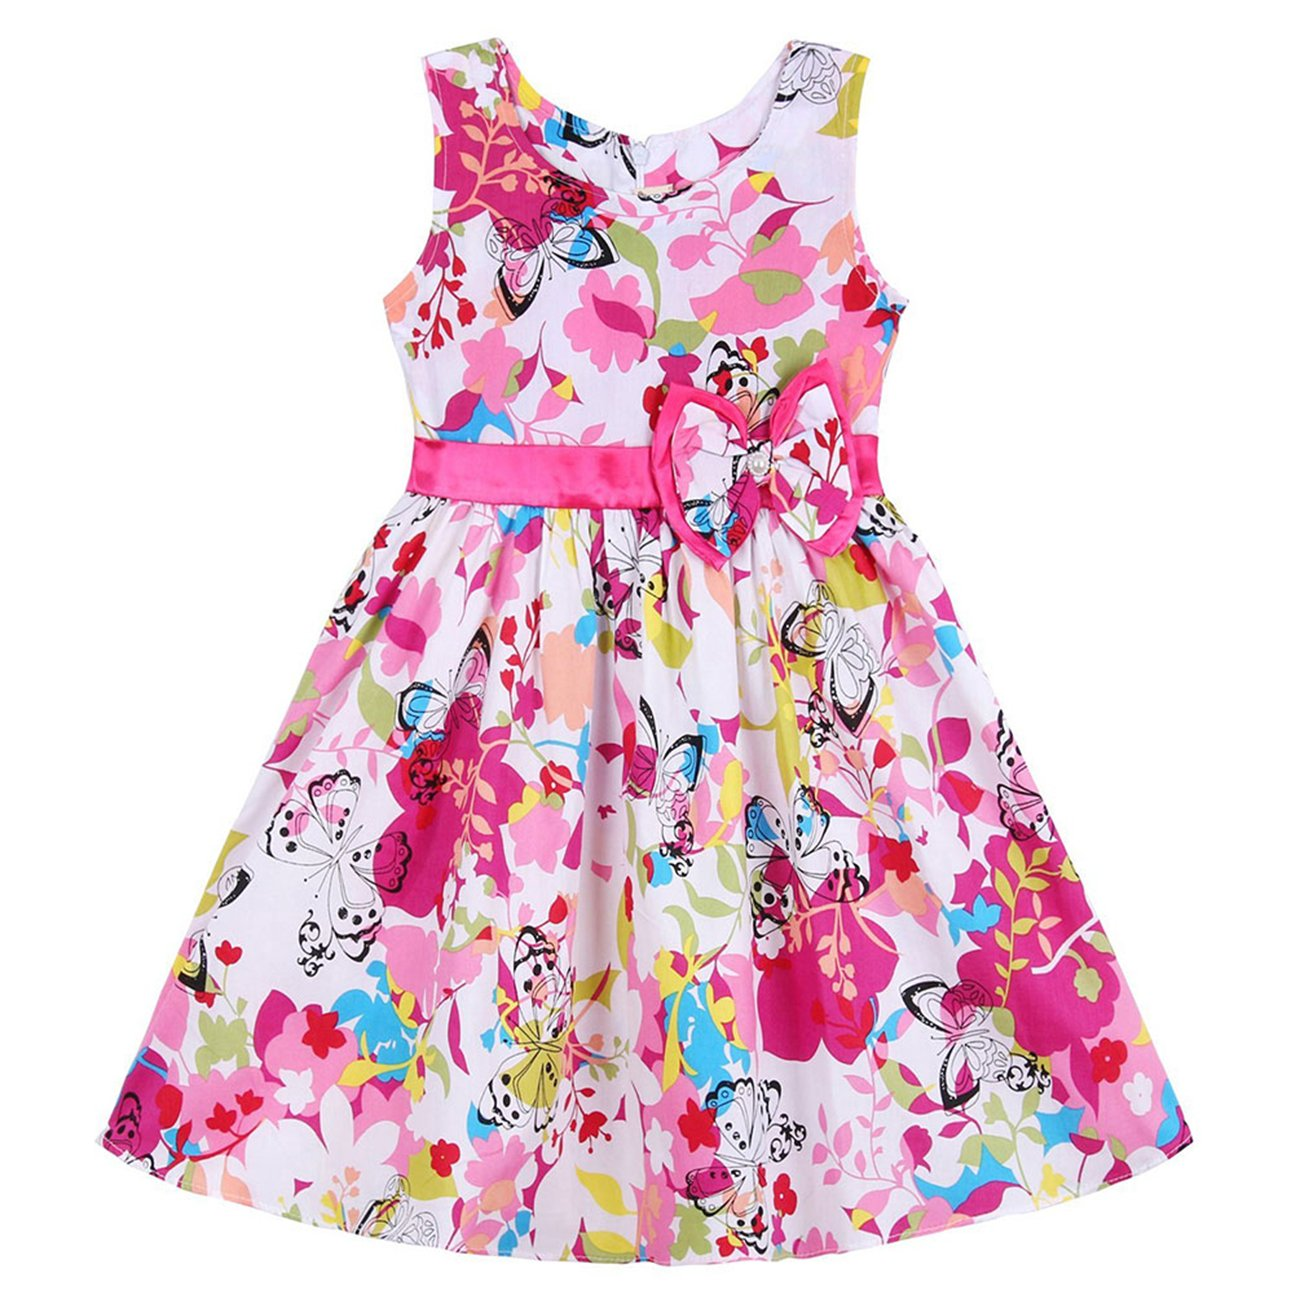 Nichna Little Girls Summer Sleeveless Floral Print Party Sundress with Bowknot Butterfly 7-8